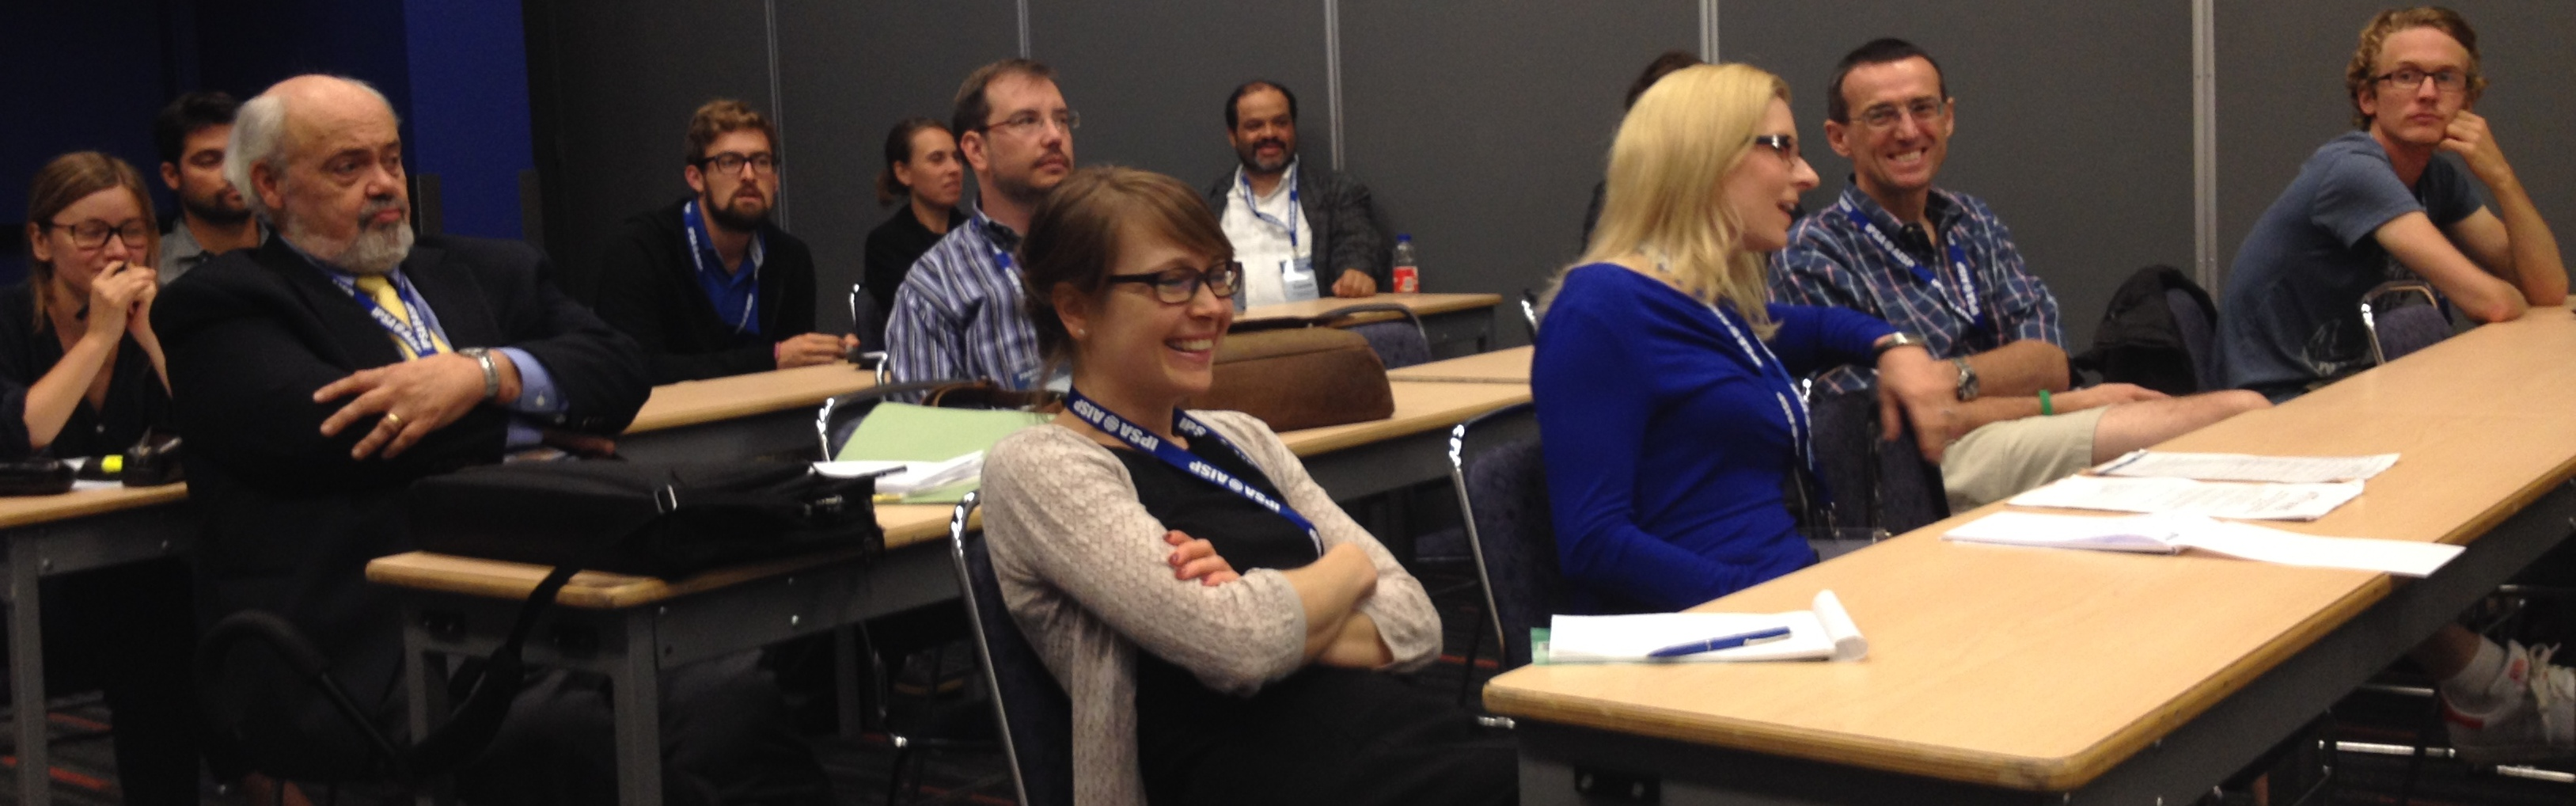 SOG research committee has successful meeting at IPSA World Congress